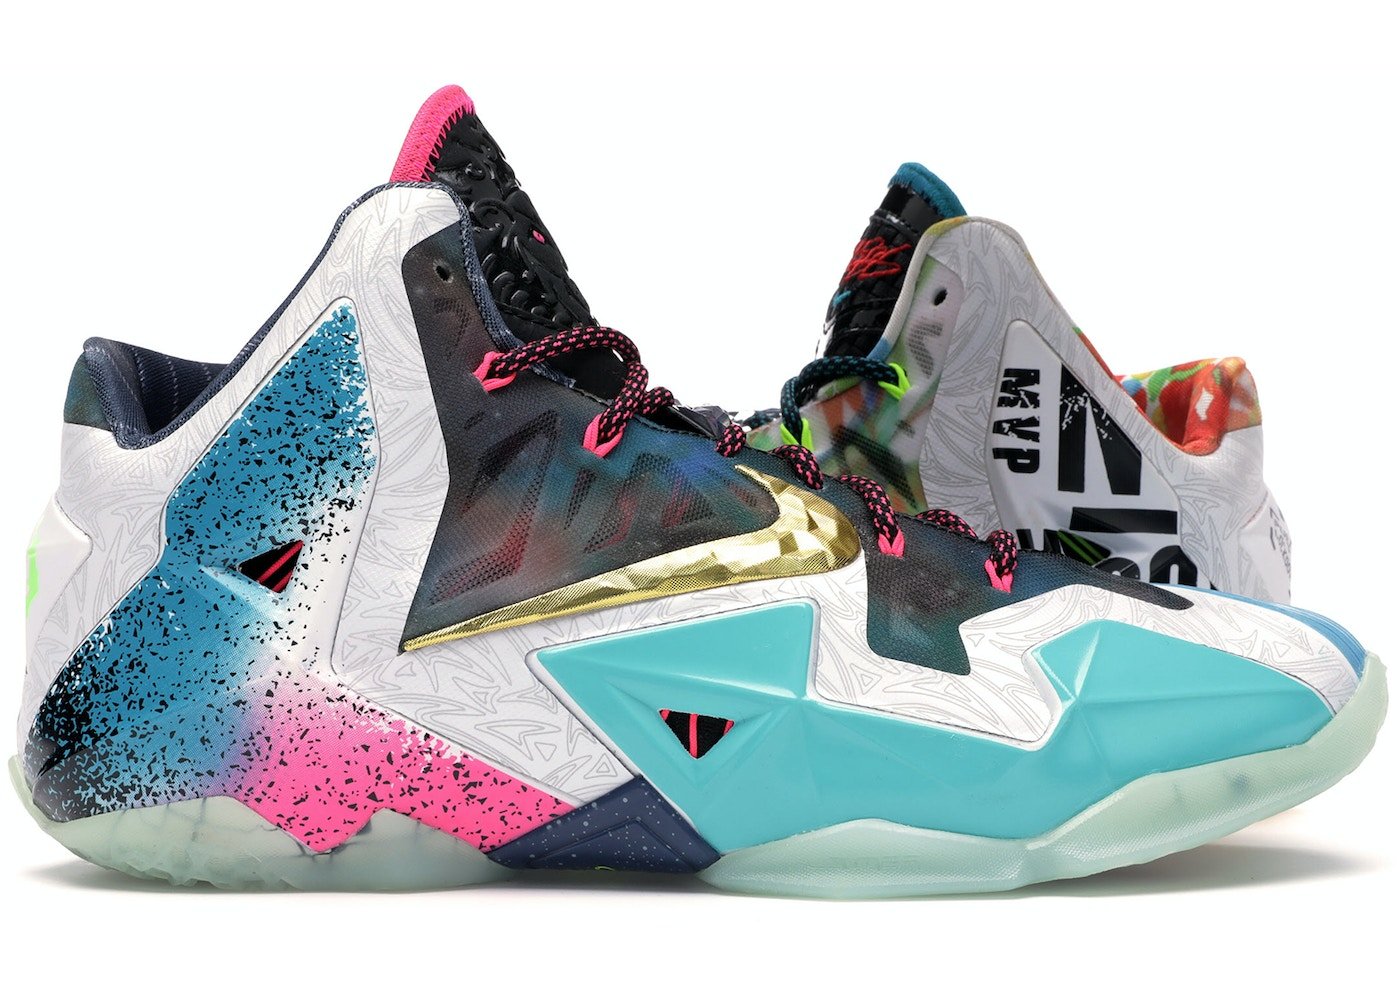 half off be570 9b780 LeBron 11 What the LeBron - 650884-400